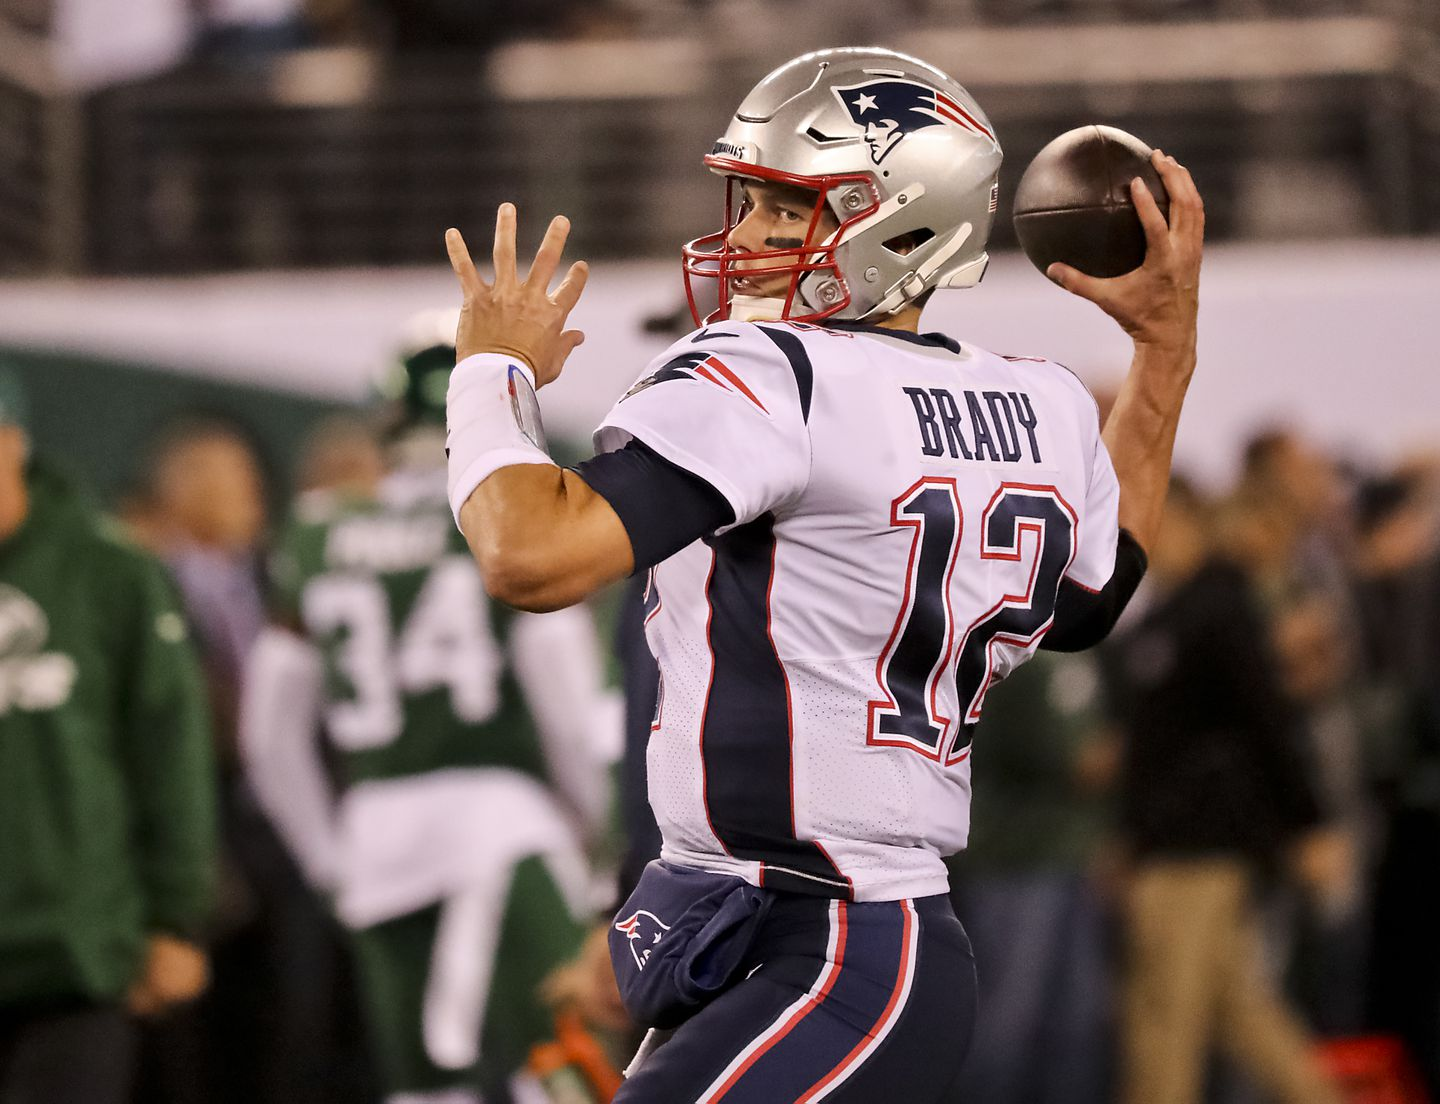 Man arrested in theft of Brady jersey allegedly was caught wearing ...